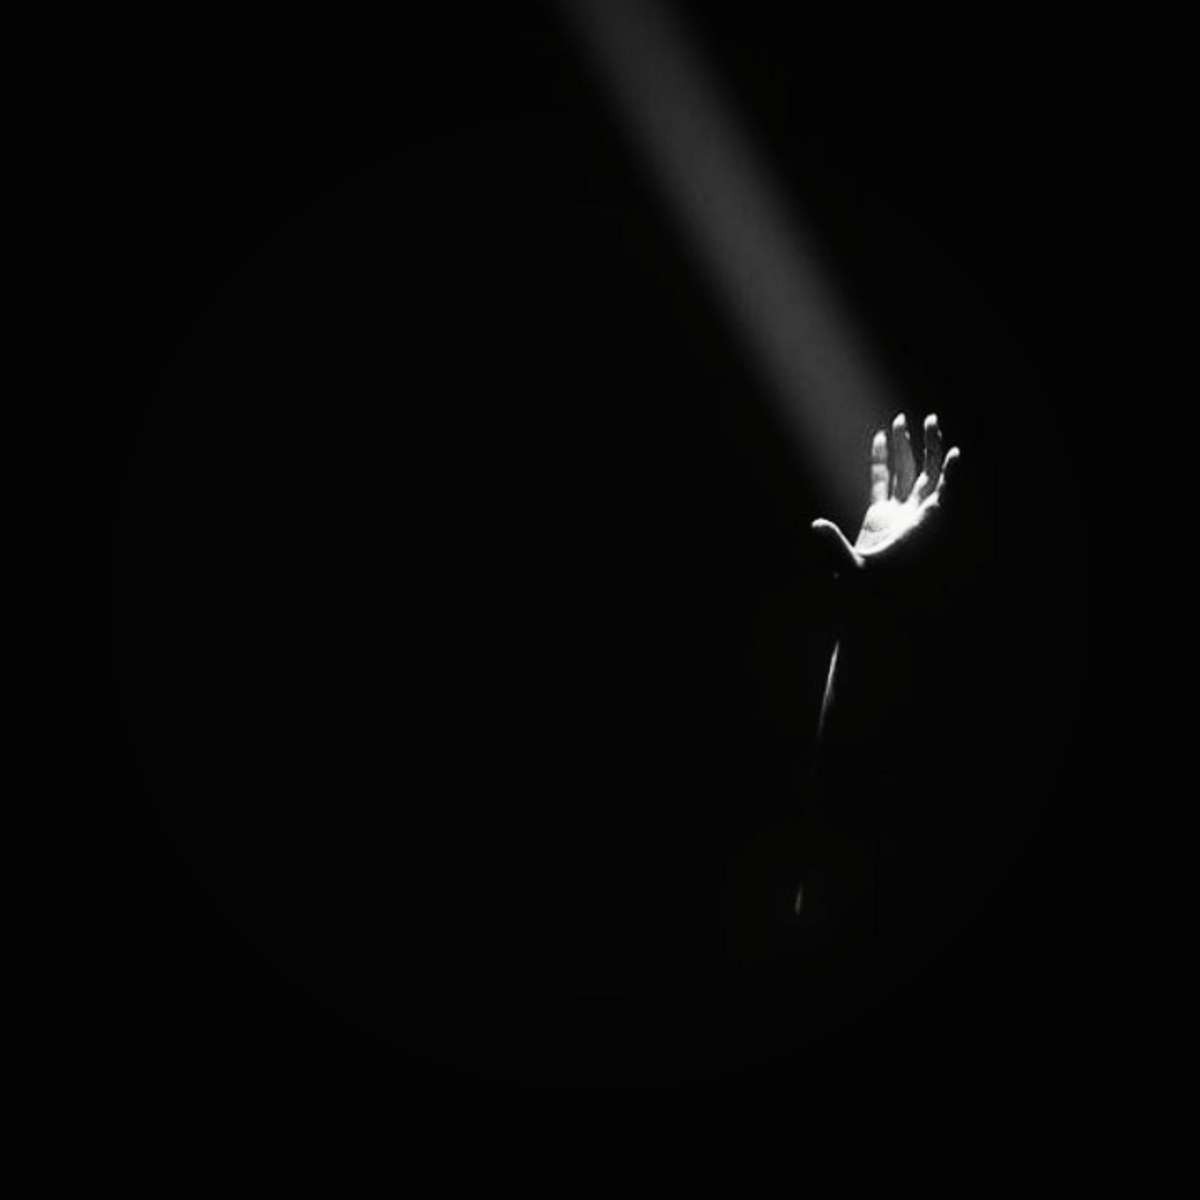 There is a light in the dark I can feel it's warmth In my hand and my heart  Why can't I hold on?